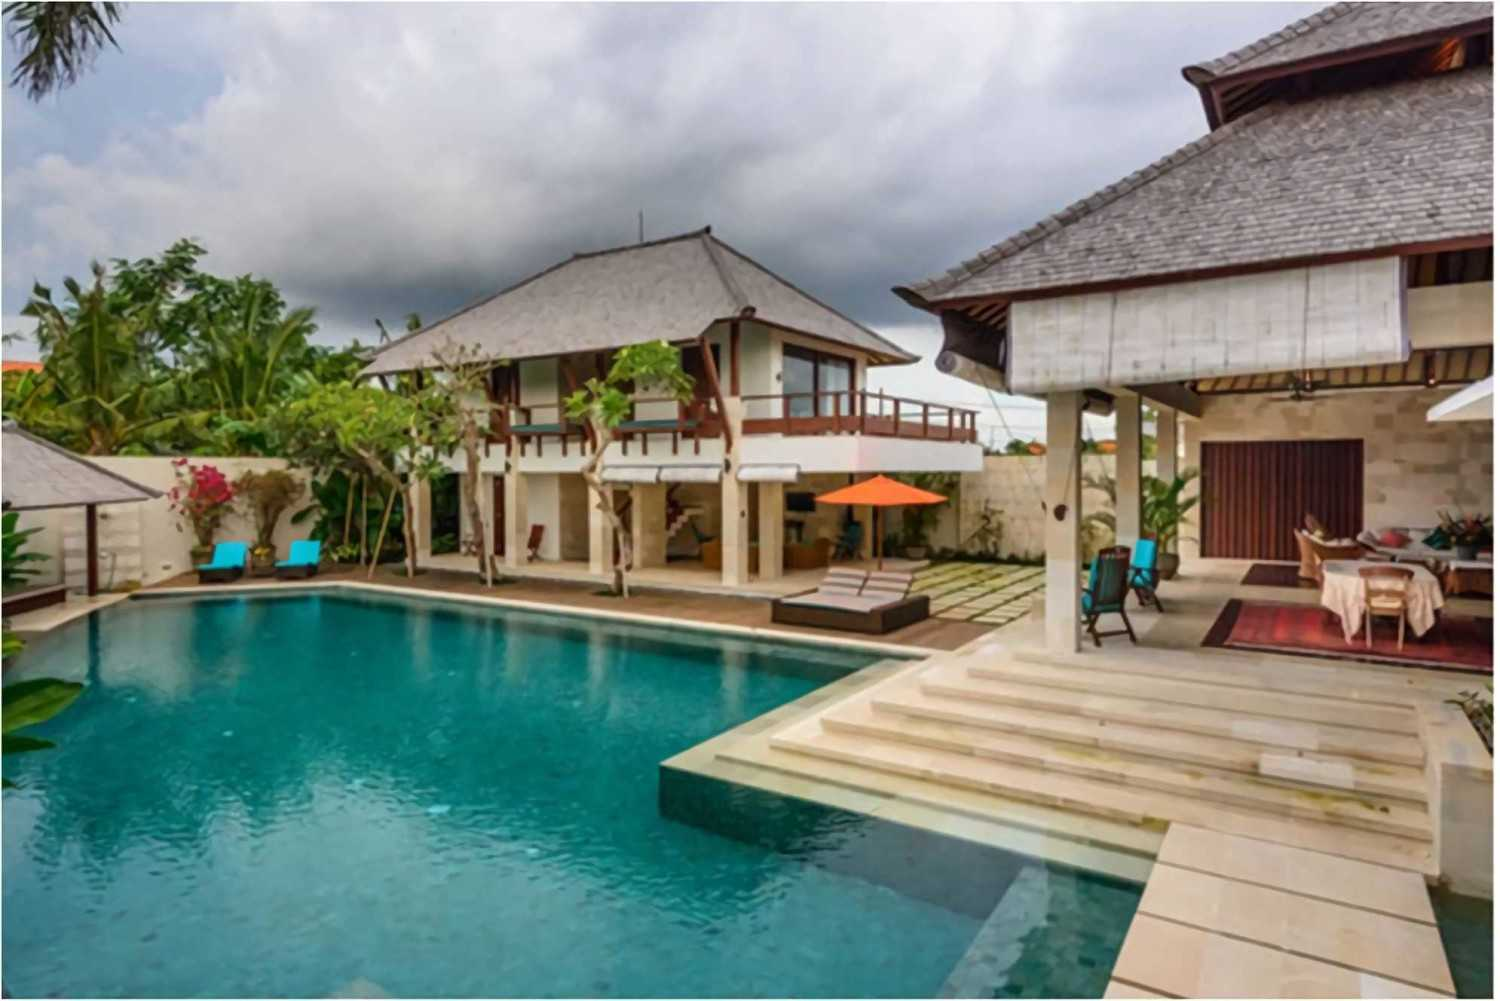 Hg Architects & Designers Associates Villa Saya Canggu, Bali Canggu, Bali Swimming Pool View  24256